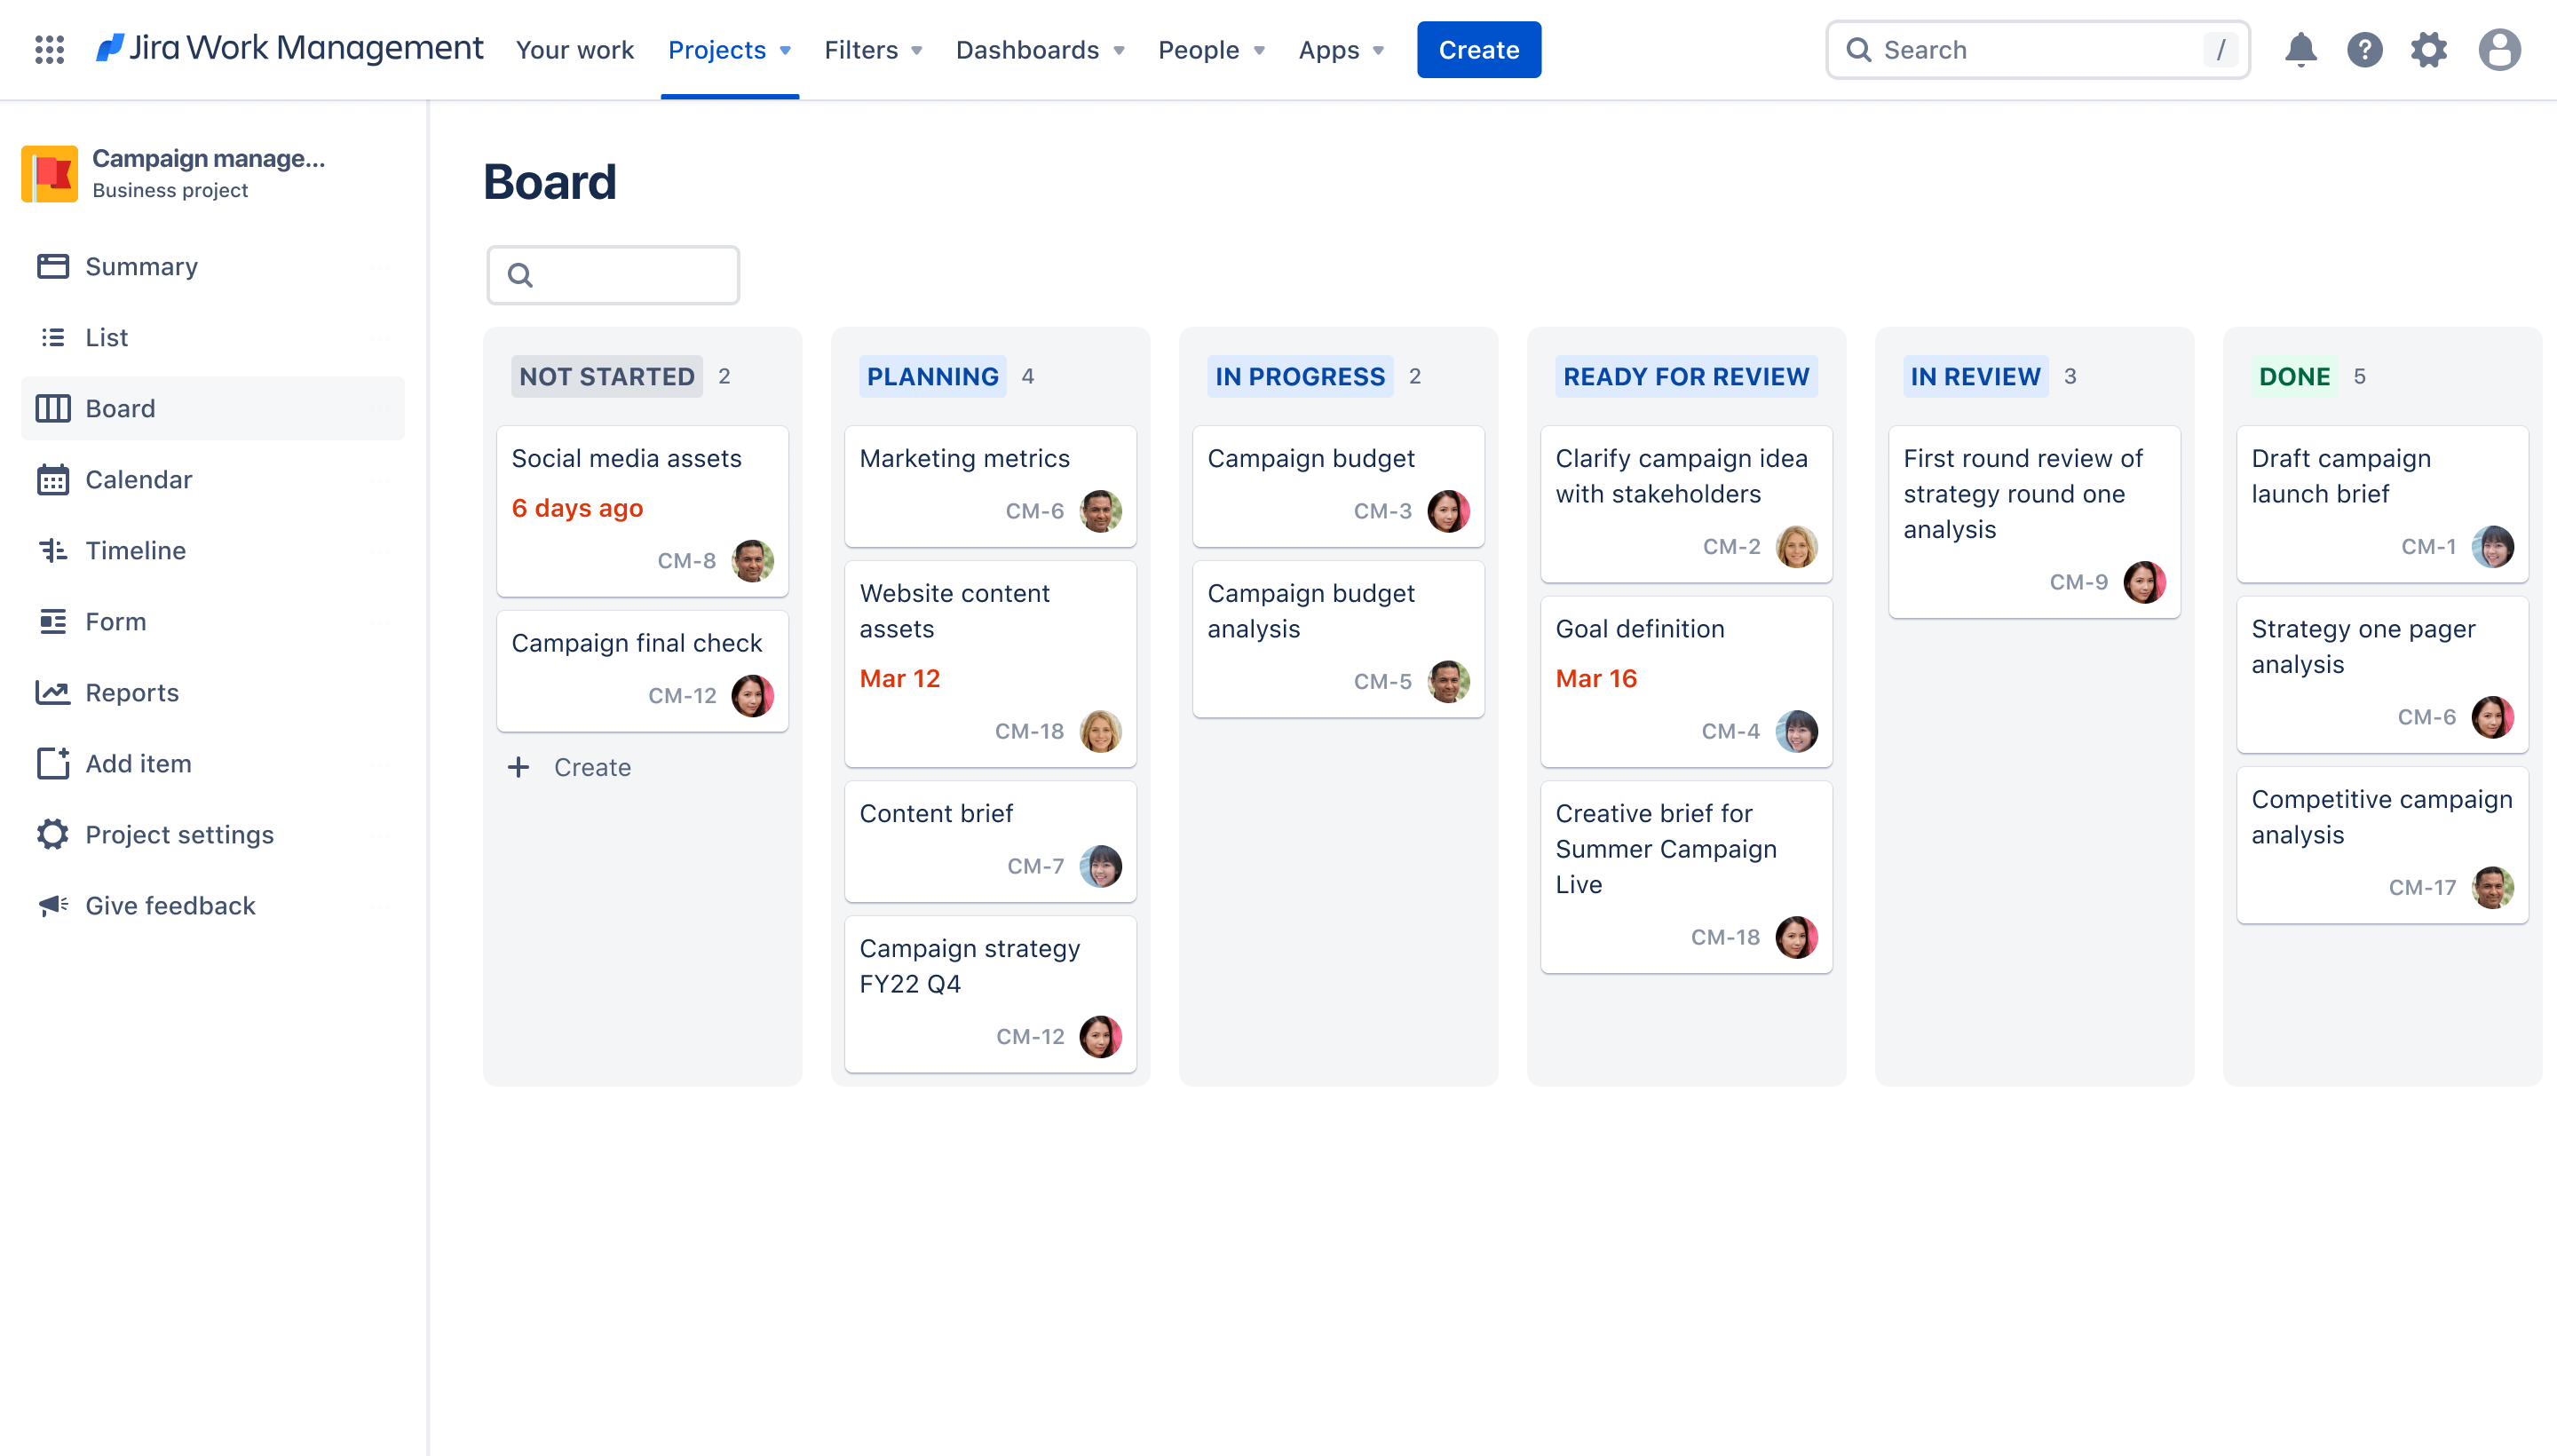 Campaign management board view Jira Work Management